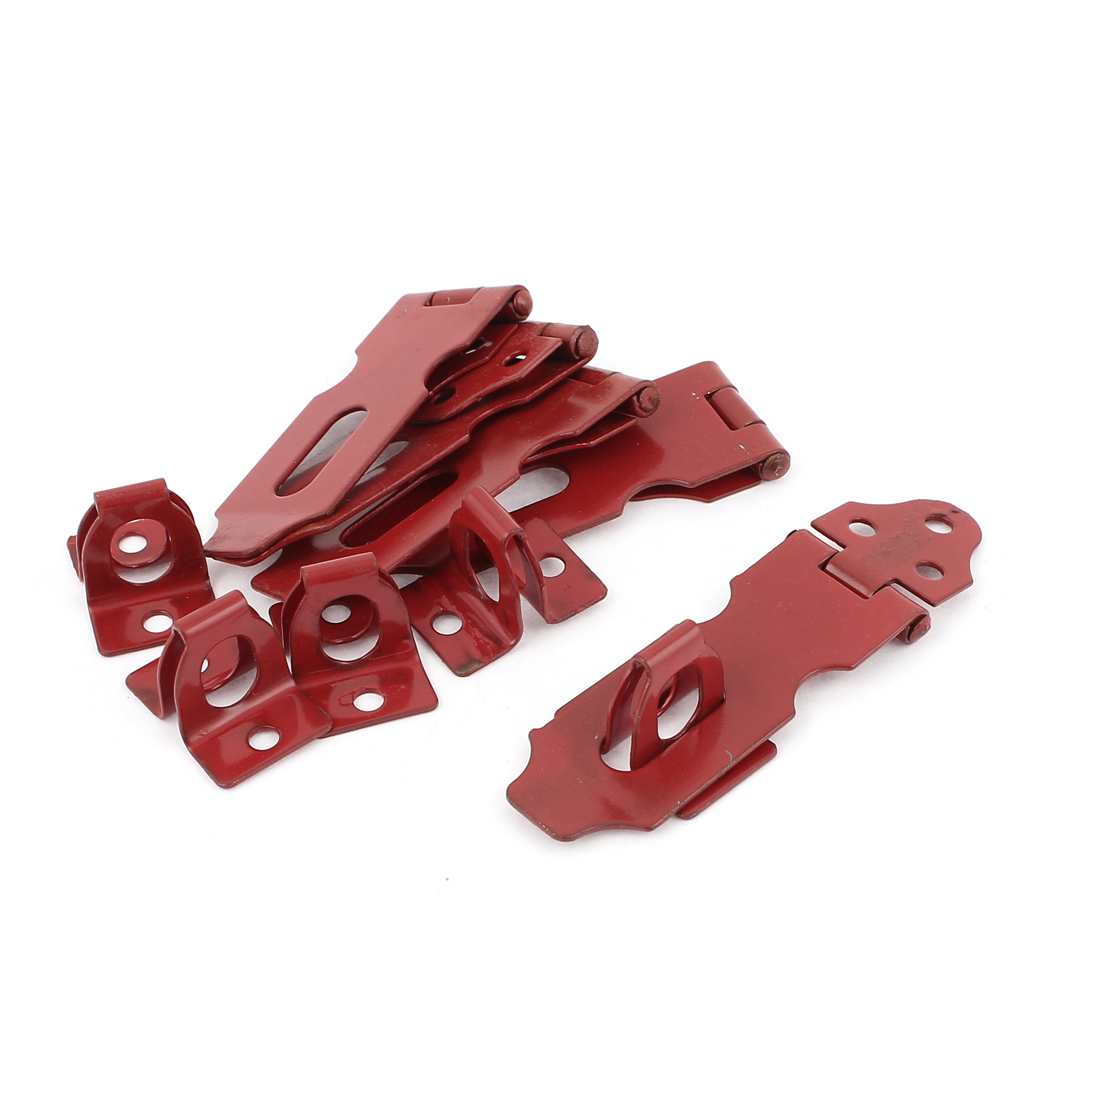 5 Pcs Home Cupboard Cabinets Doors Latch Hasp Staple Set 6cm Long Red